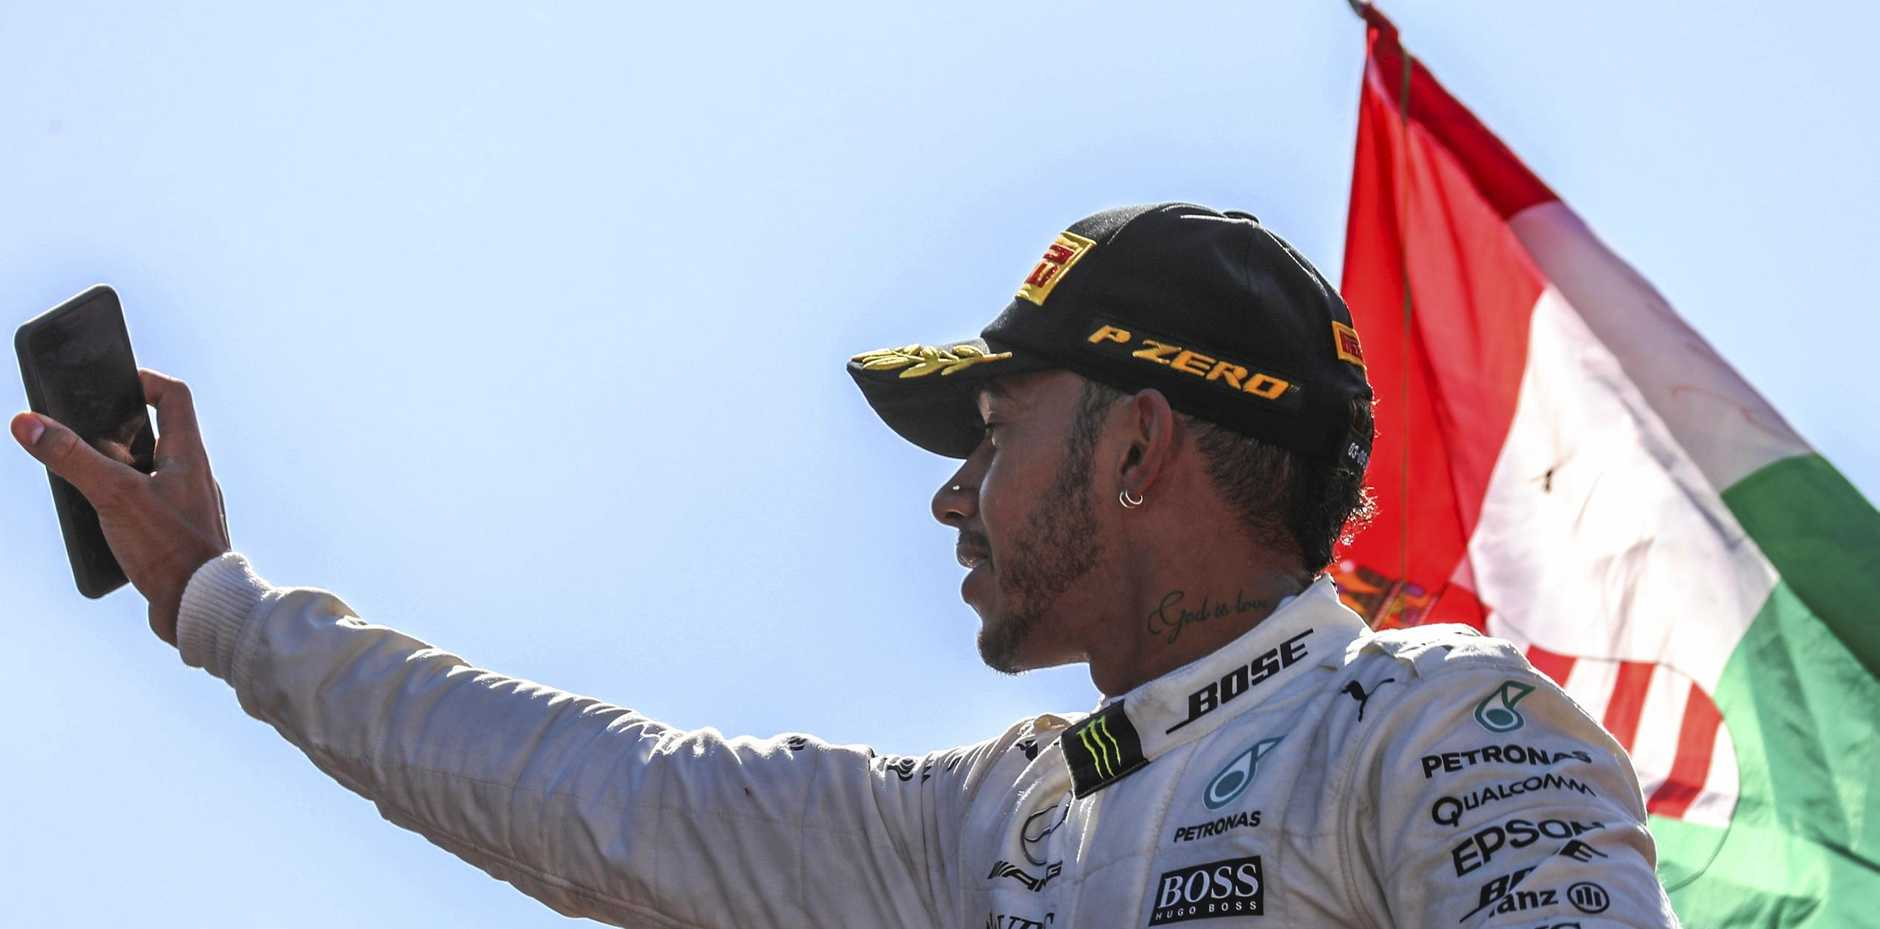 Lewis Hamilton takes a picture during celebrations on the podium after winning the Grand Prix of Italy